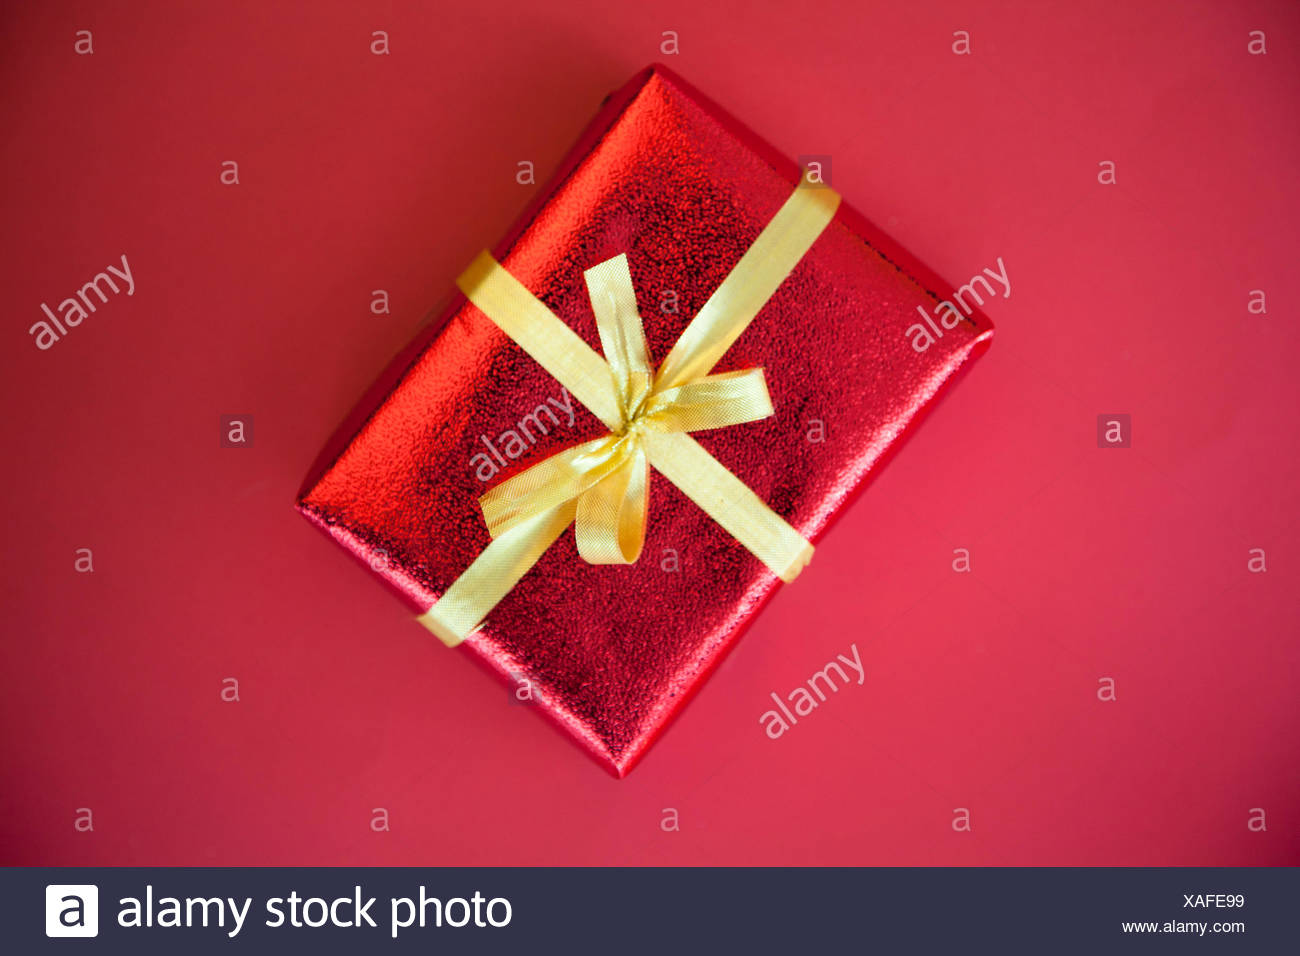 Gift wrapped with tied bow - Stock Image